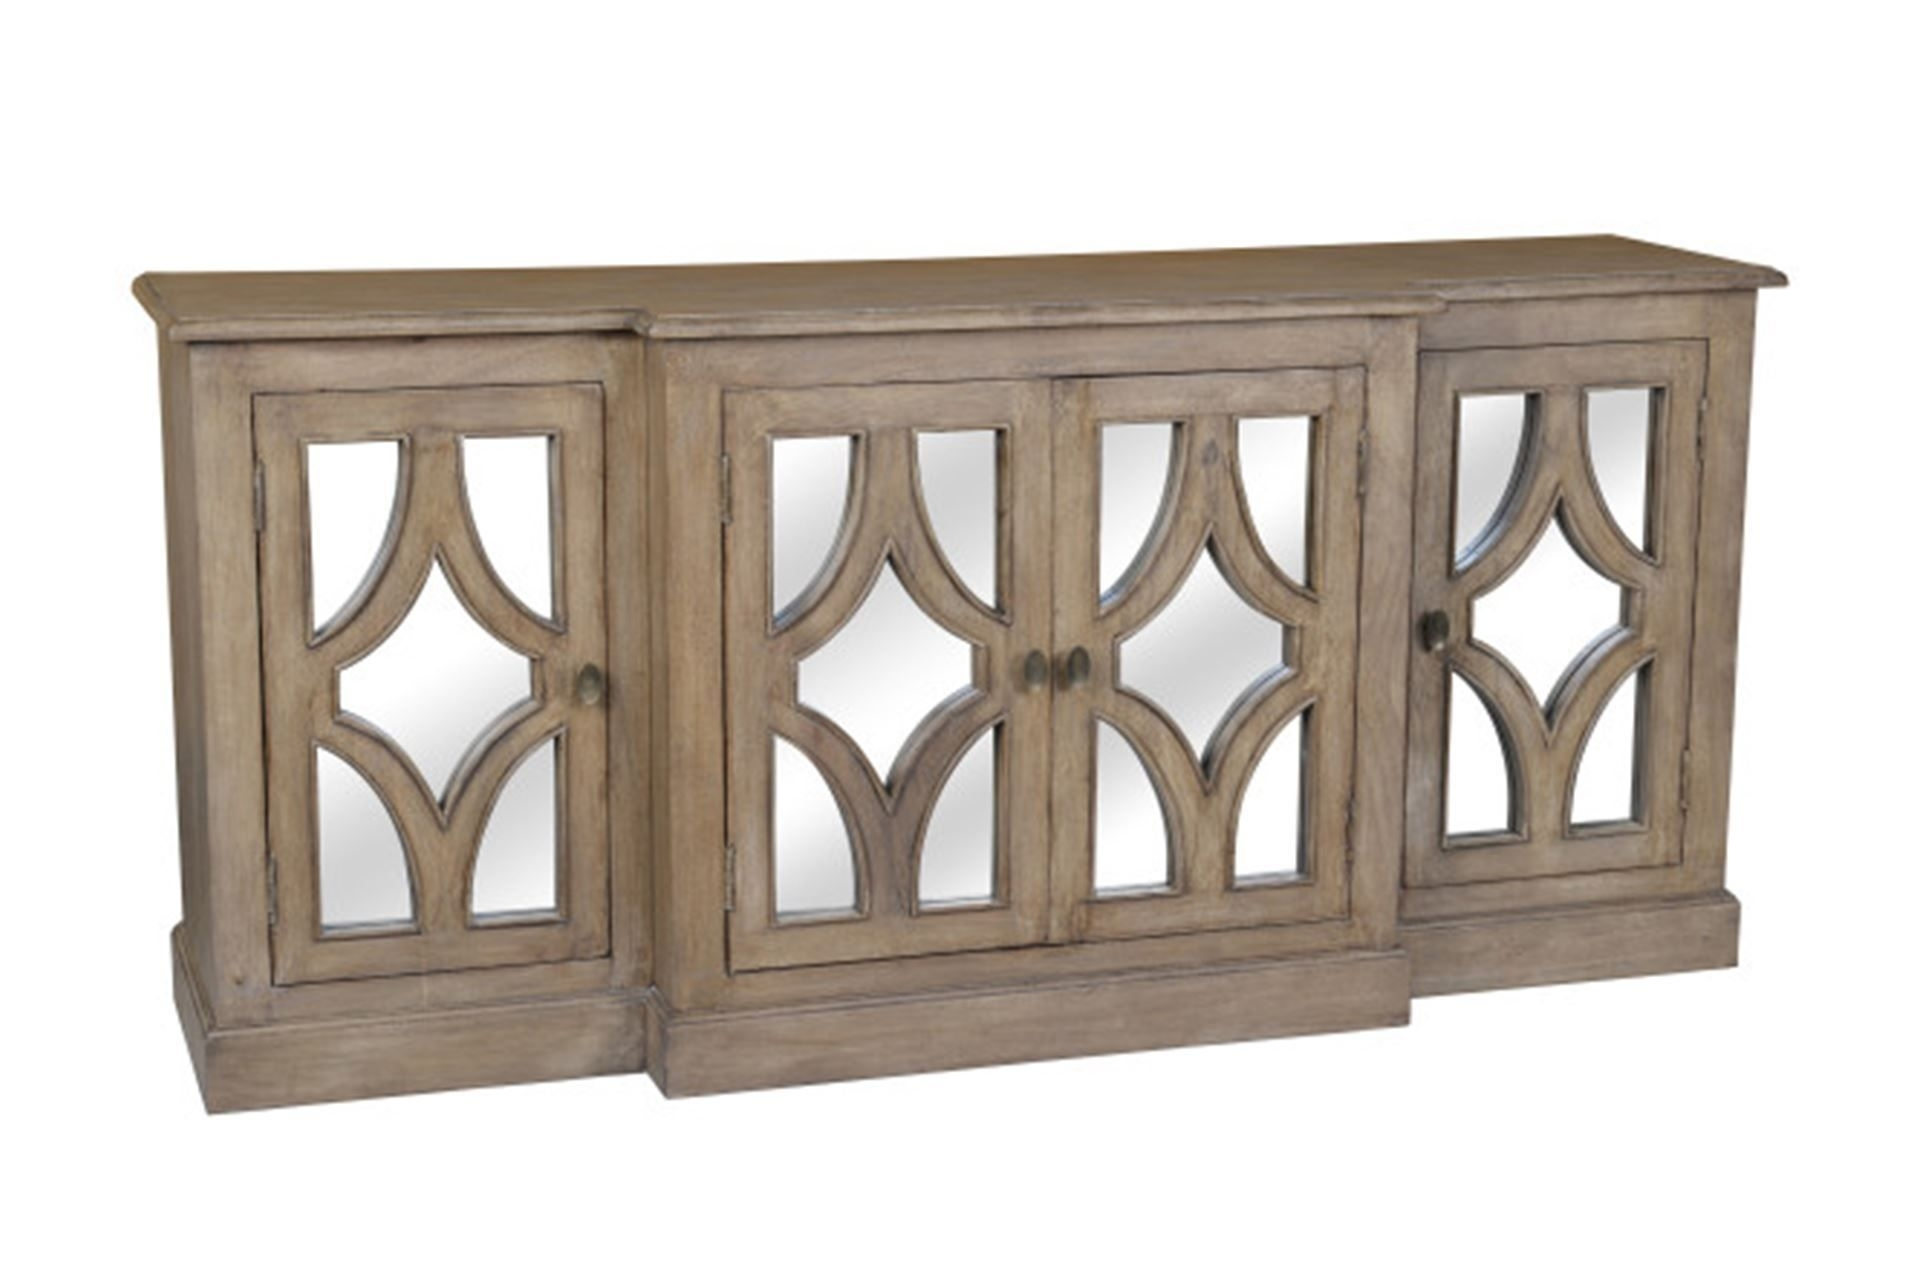 Otb Acacia Wood 4 Door Sideboard – Signature | Cherf | Pinterest For Most Current White Wash Carved Door Jumbo Sideboards (View 19 of 20)